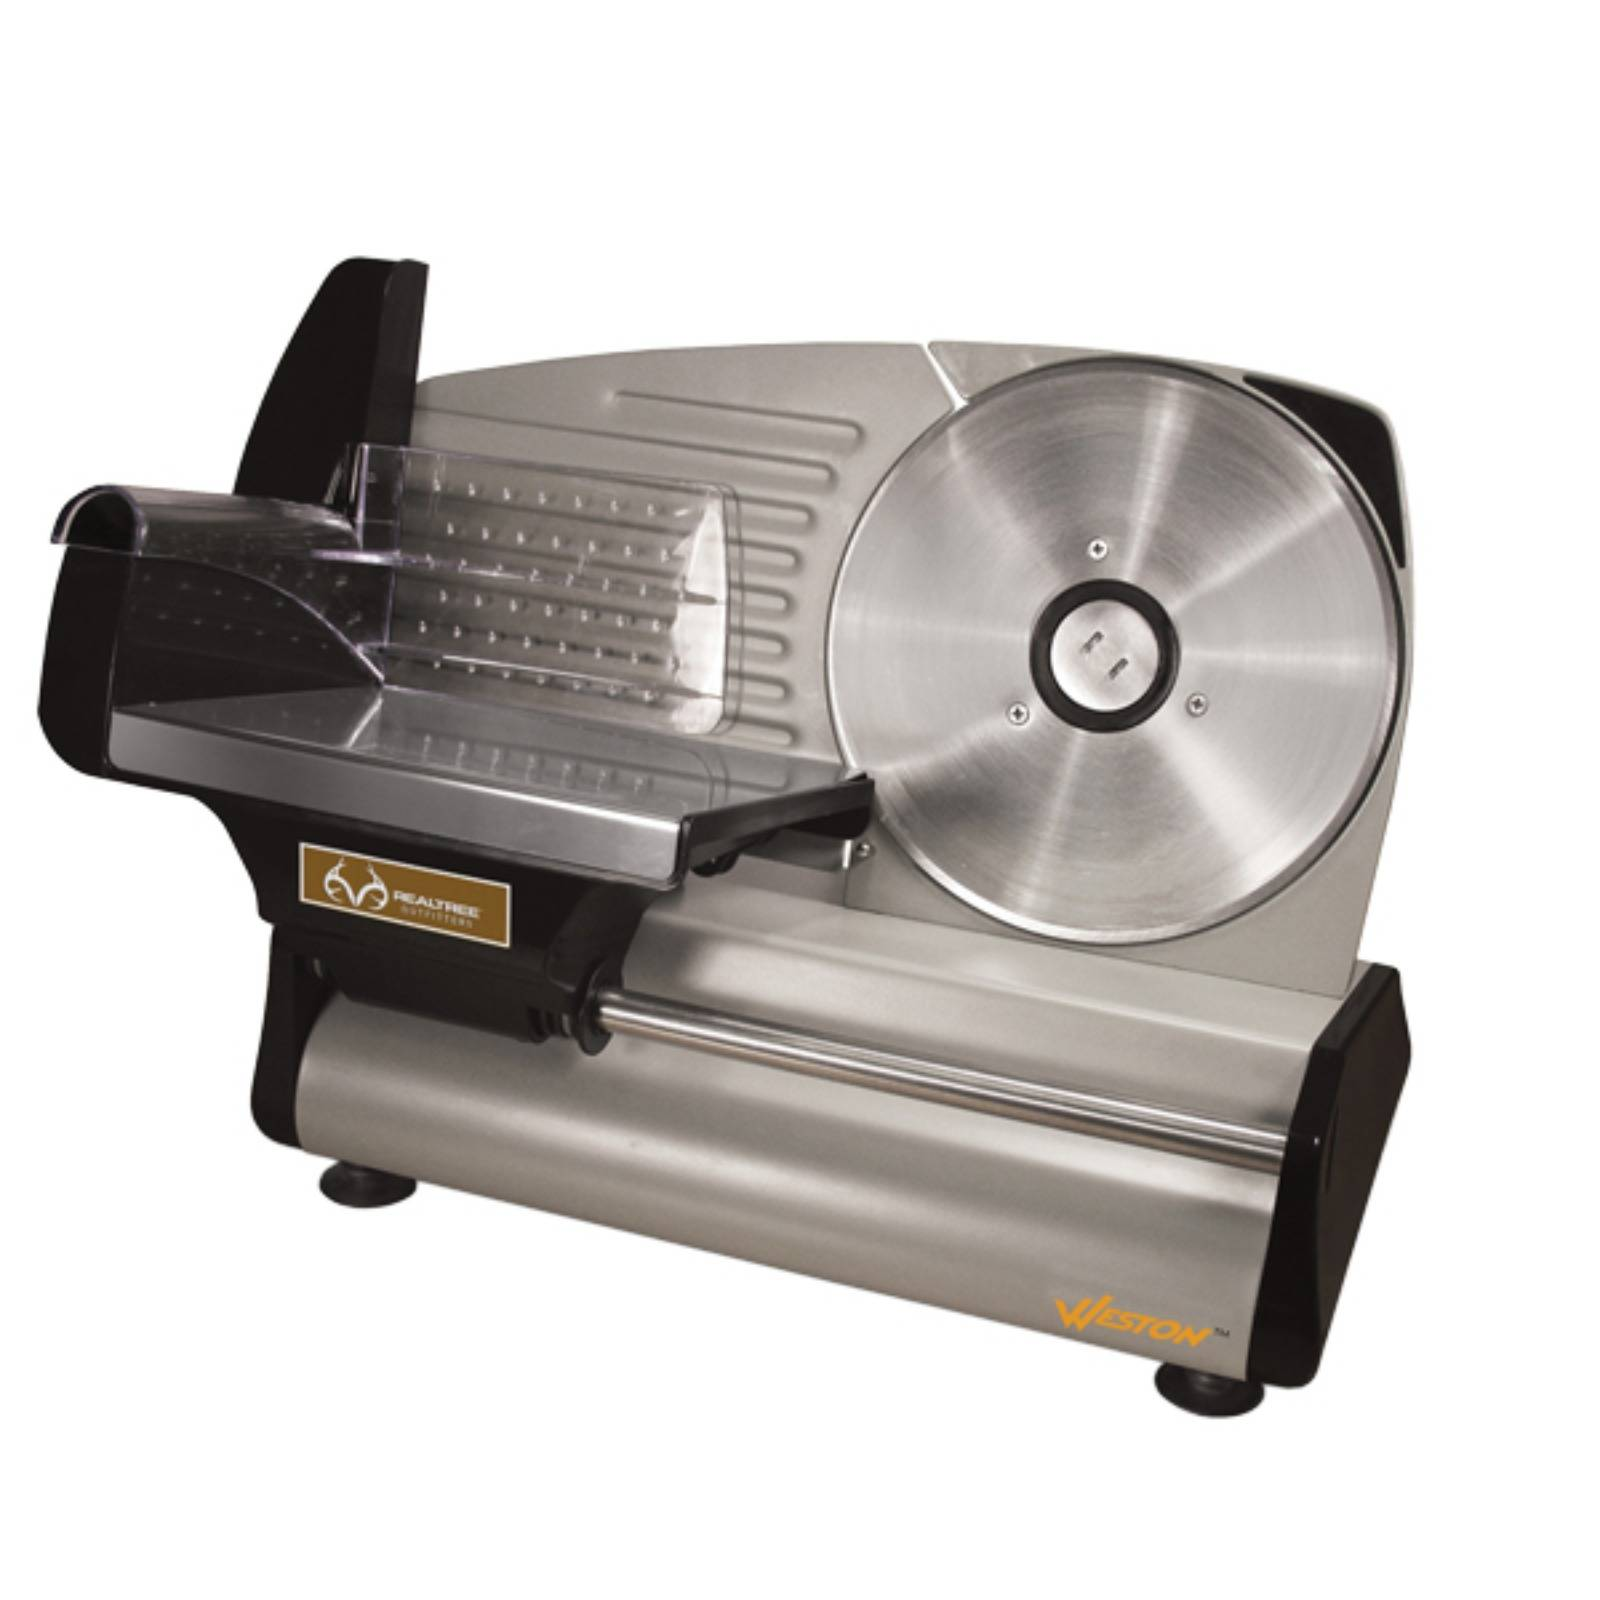 "Euro Hunt WESTON - 7-1/2"" Meat Slicer"